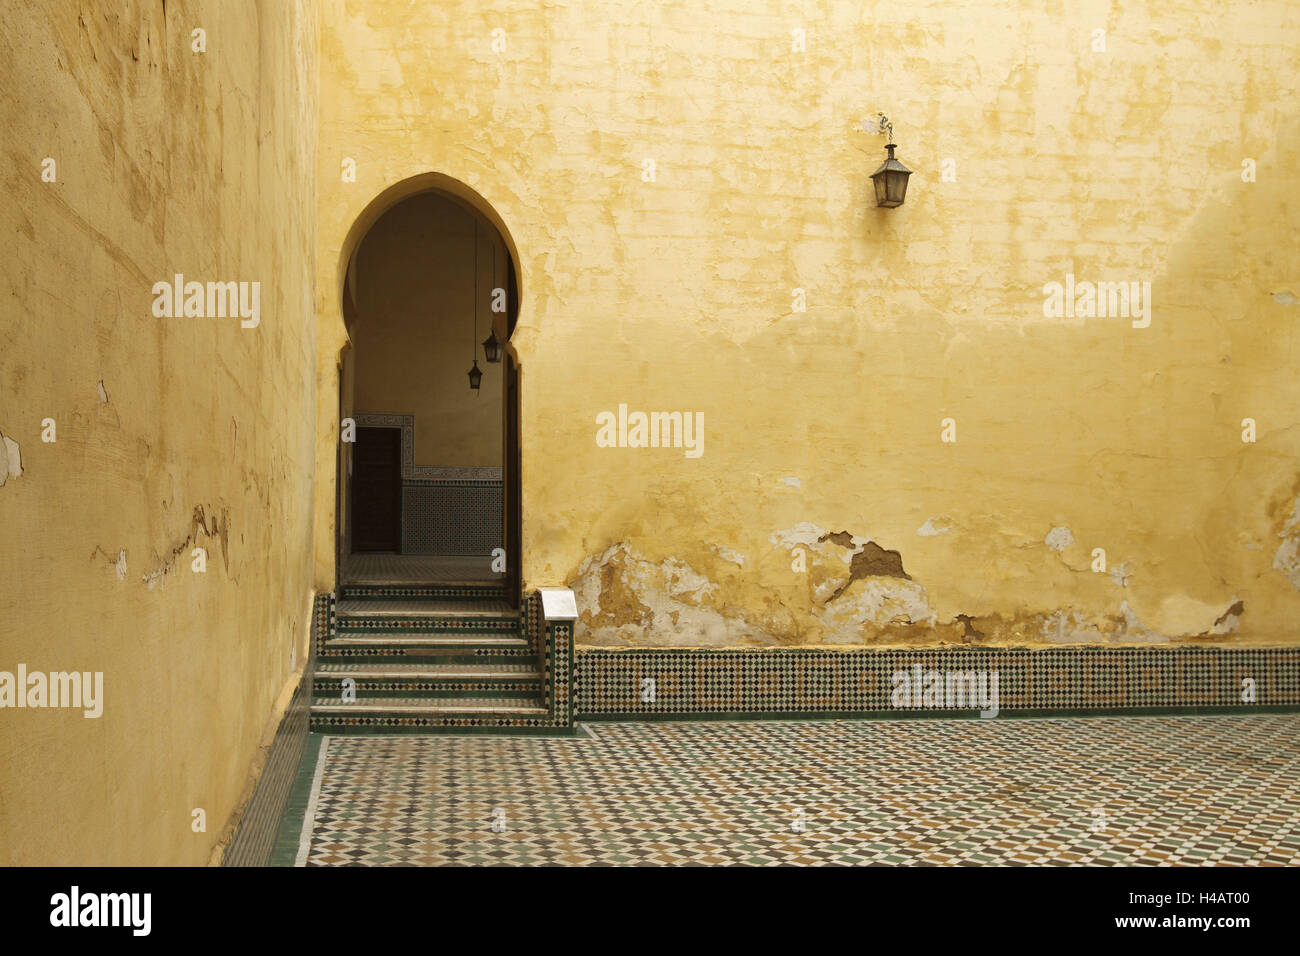 Africa, Morocco, Meknes, Mausoleum of Moulay Ismail, Stock Photo